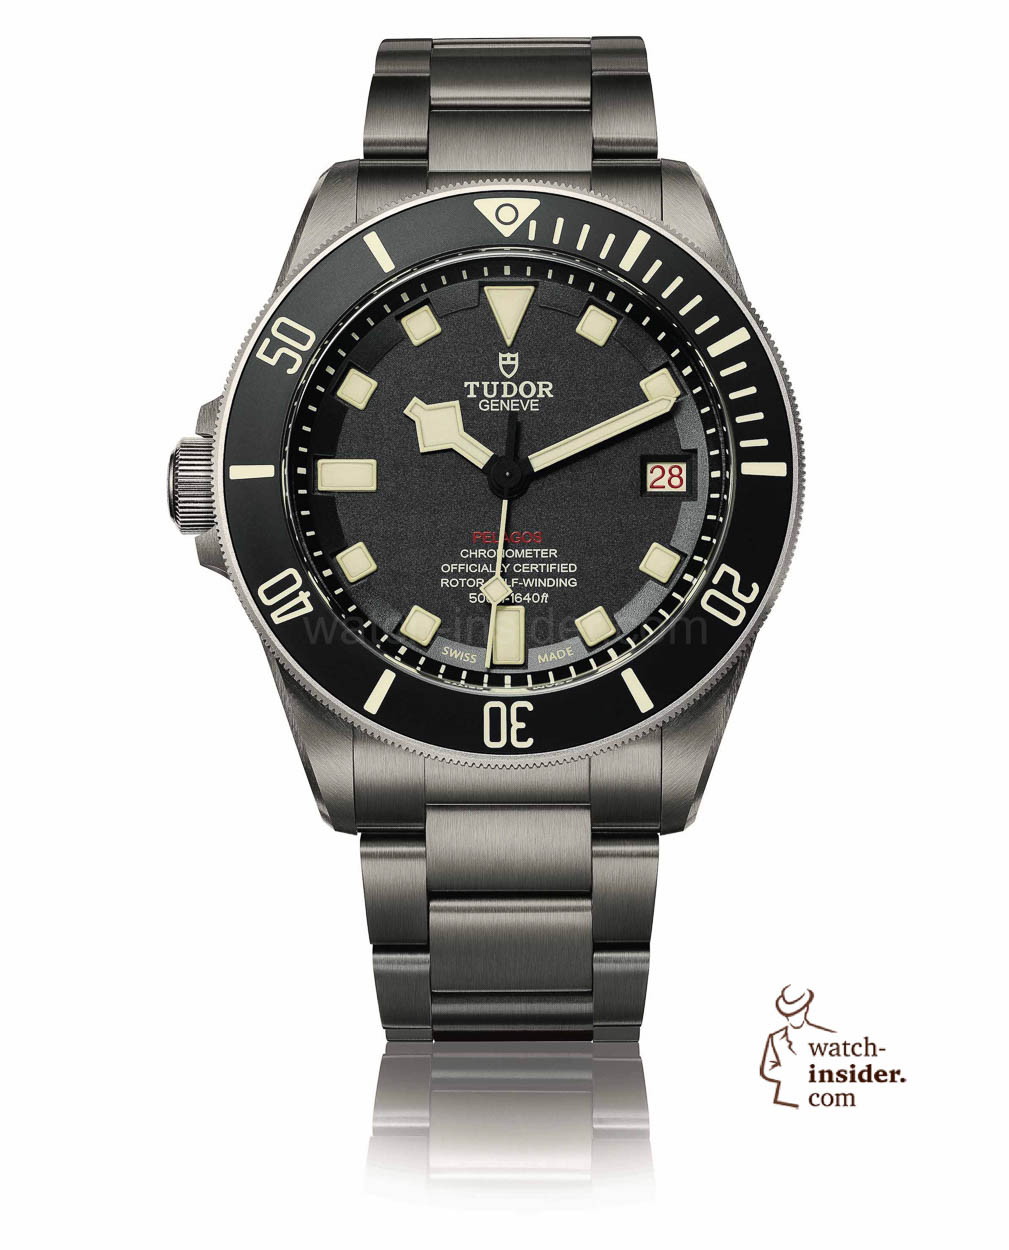 tudor pelagos lhd left hand drive the right choice when you are left handed watch. Black Bedroom Furniture Sets. Home Design Ideas